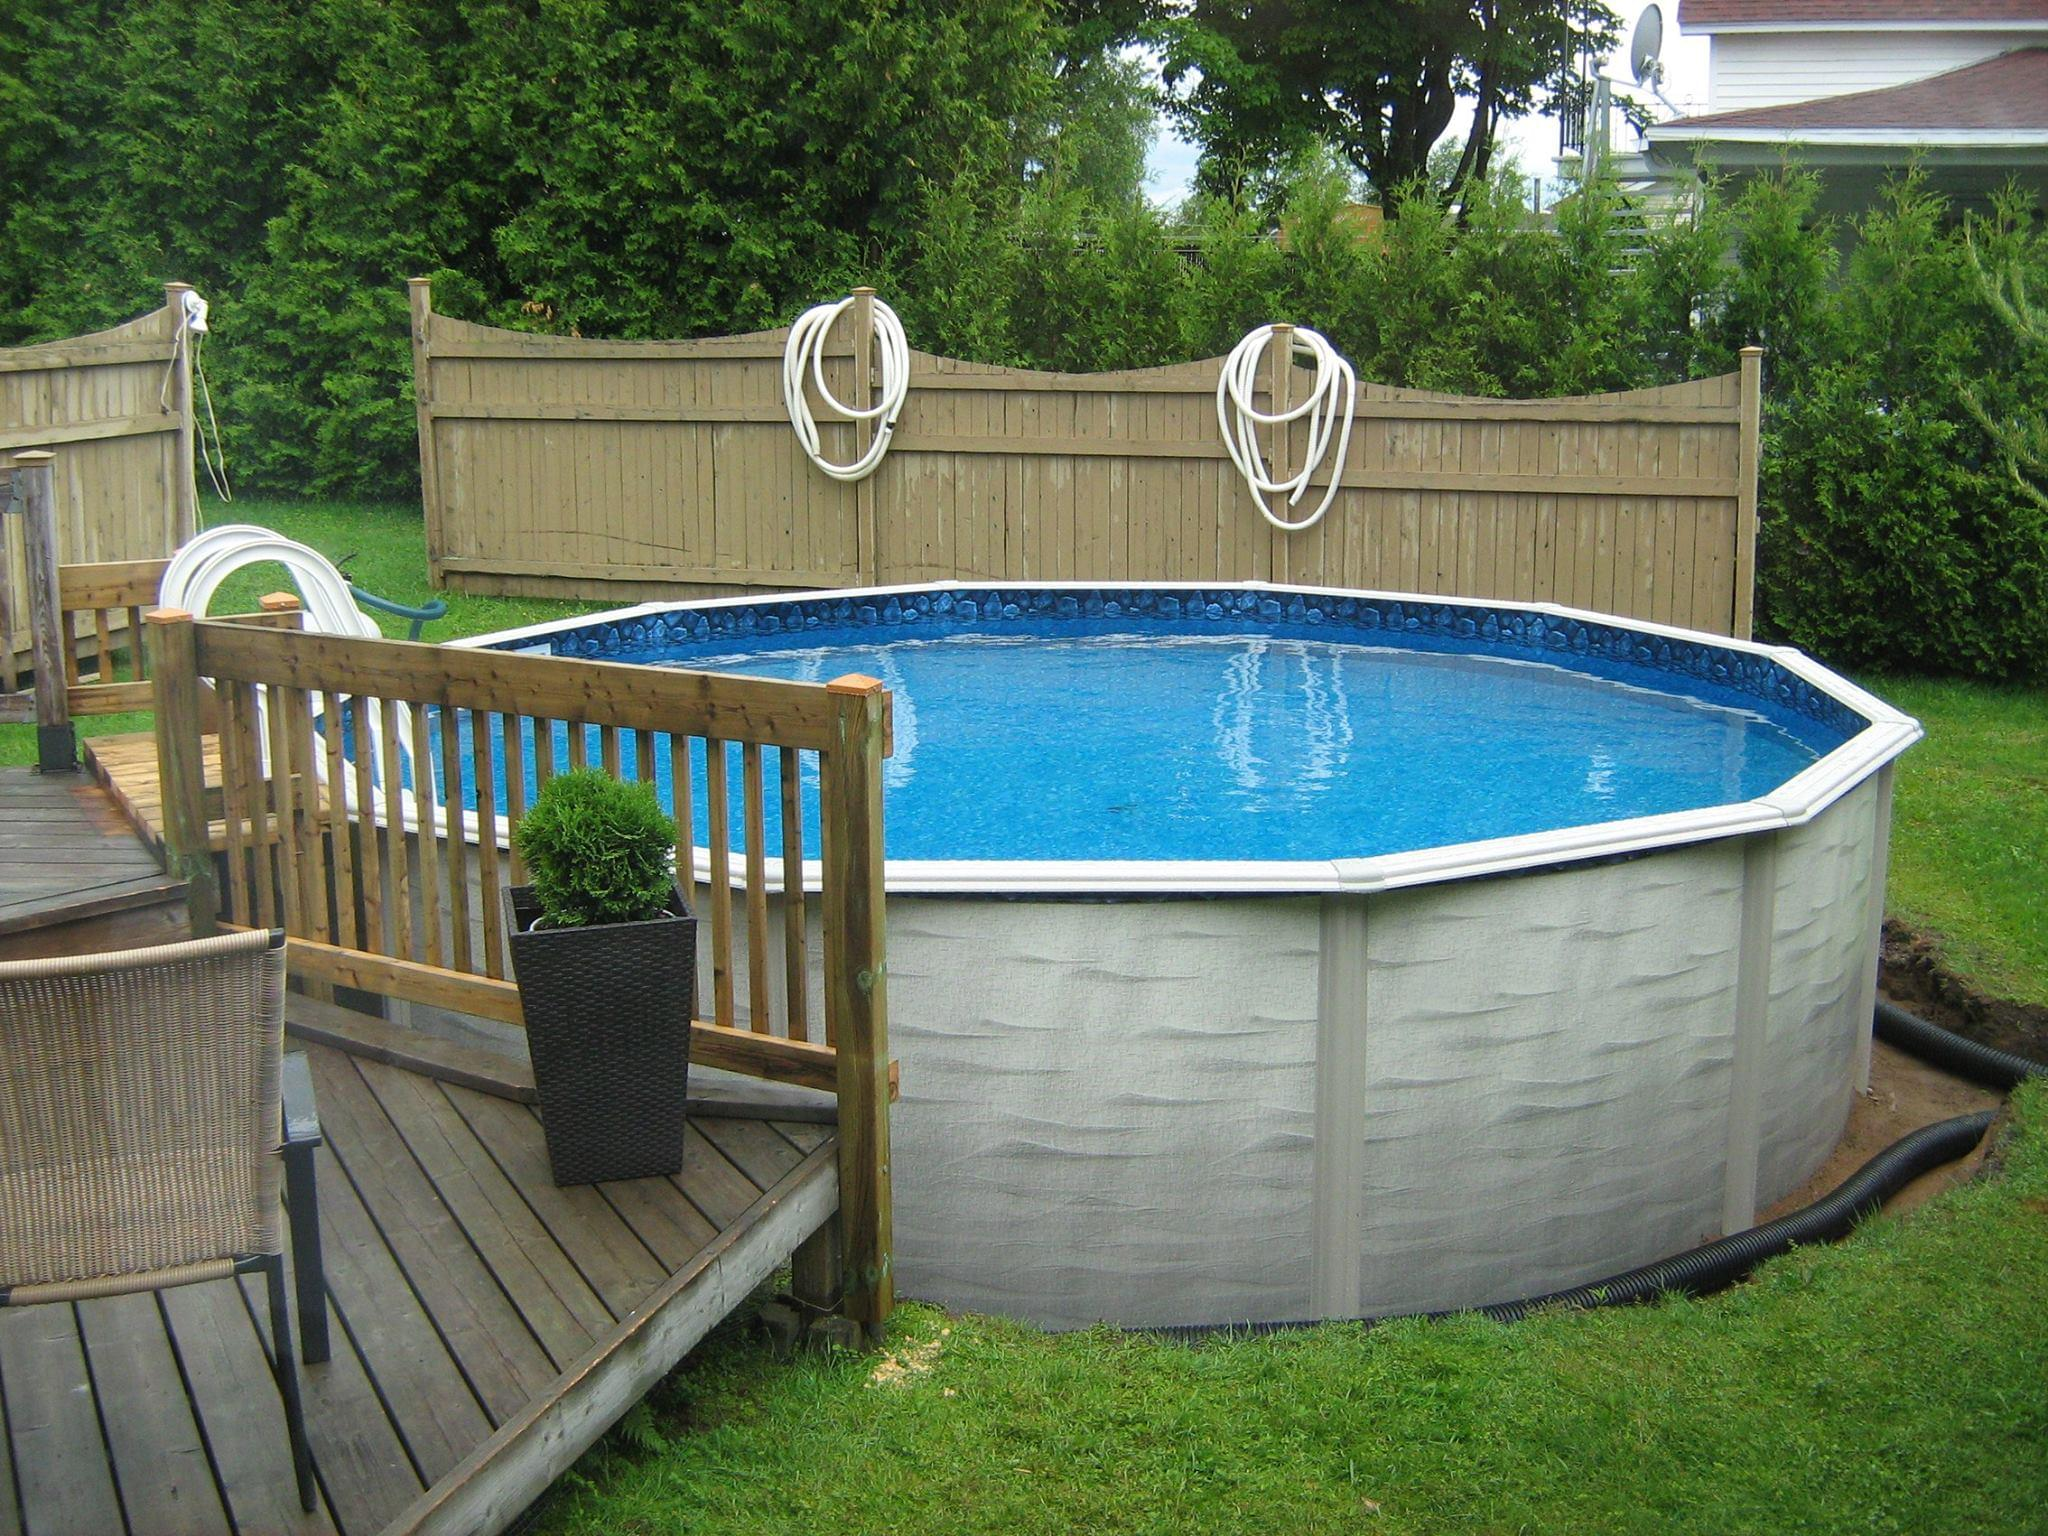 Above ground pools pool supplies canada for Club piscine above ground pools prices